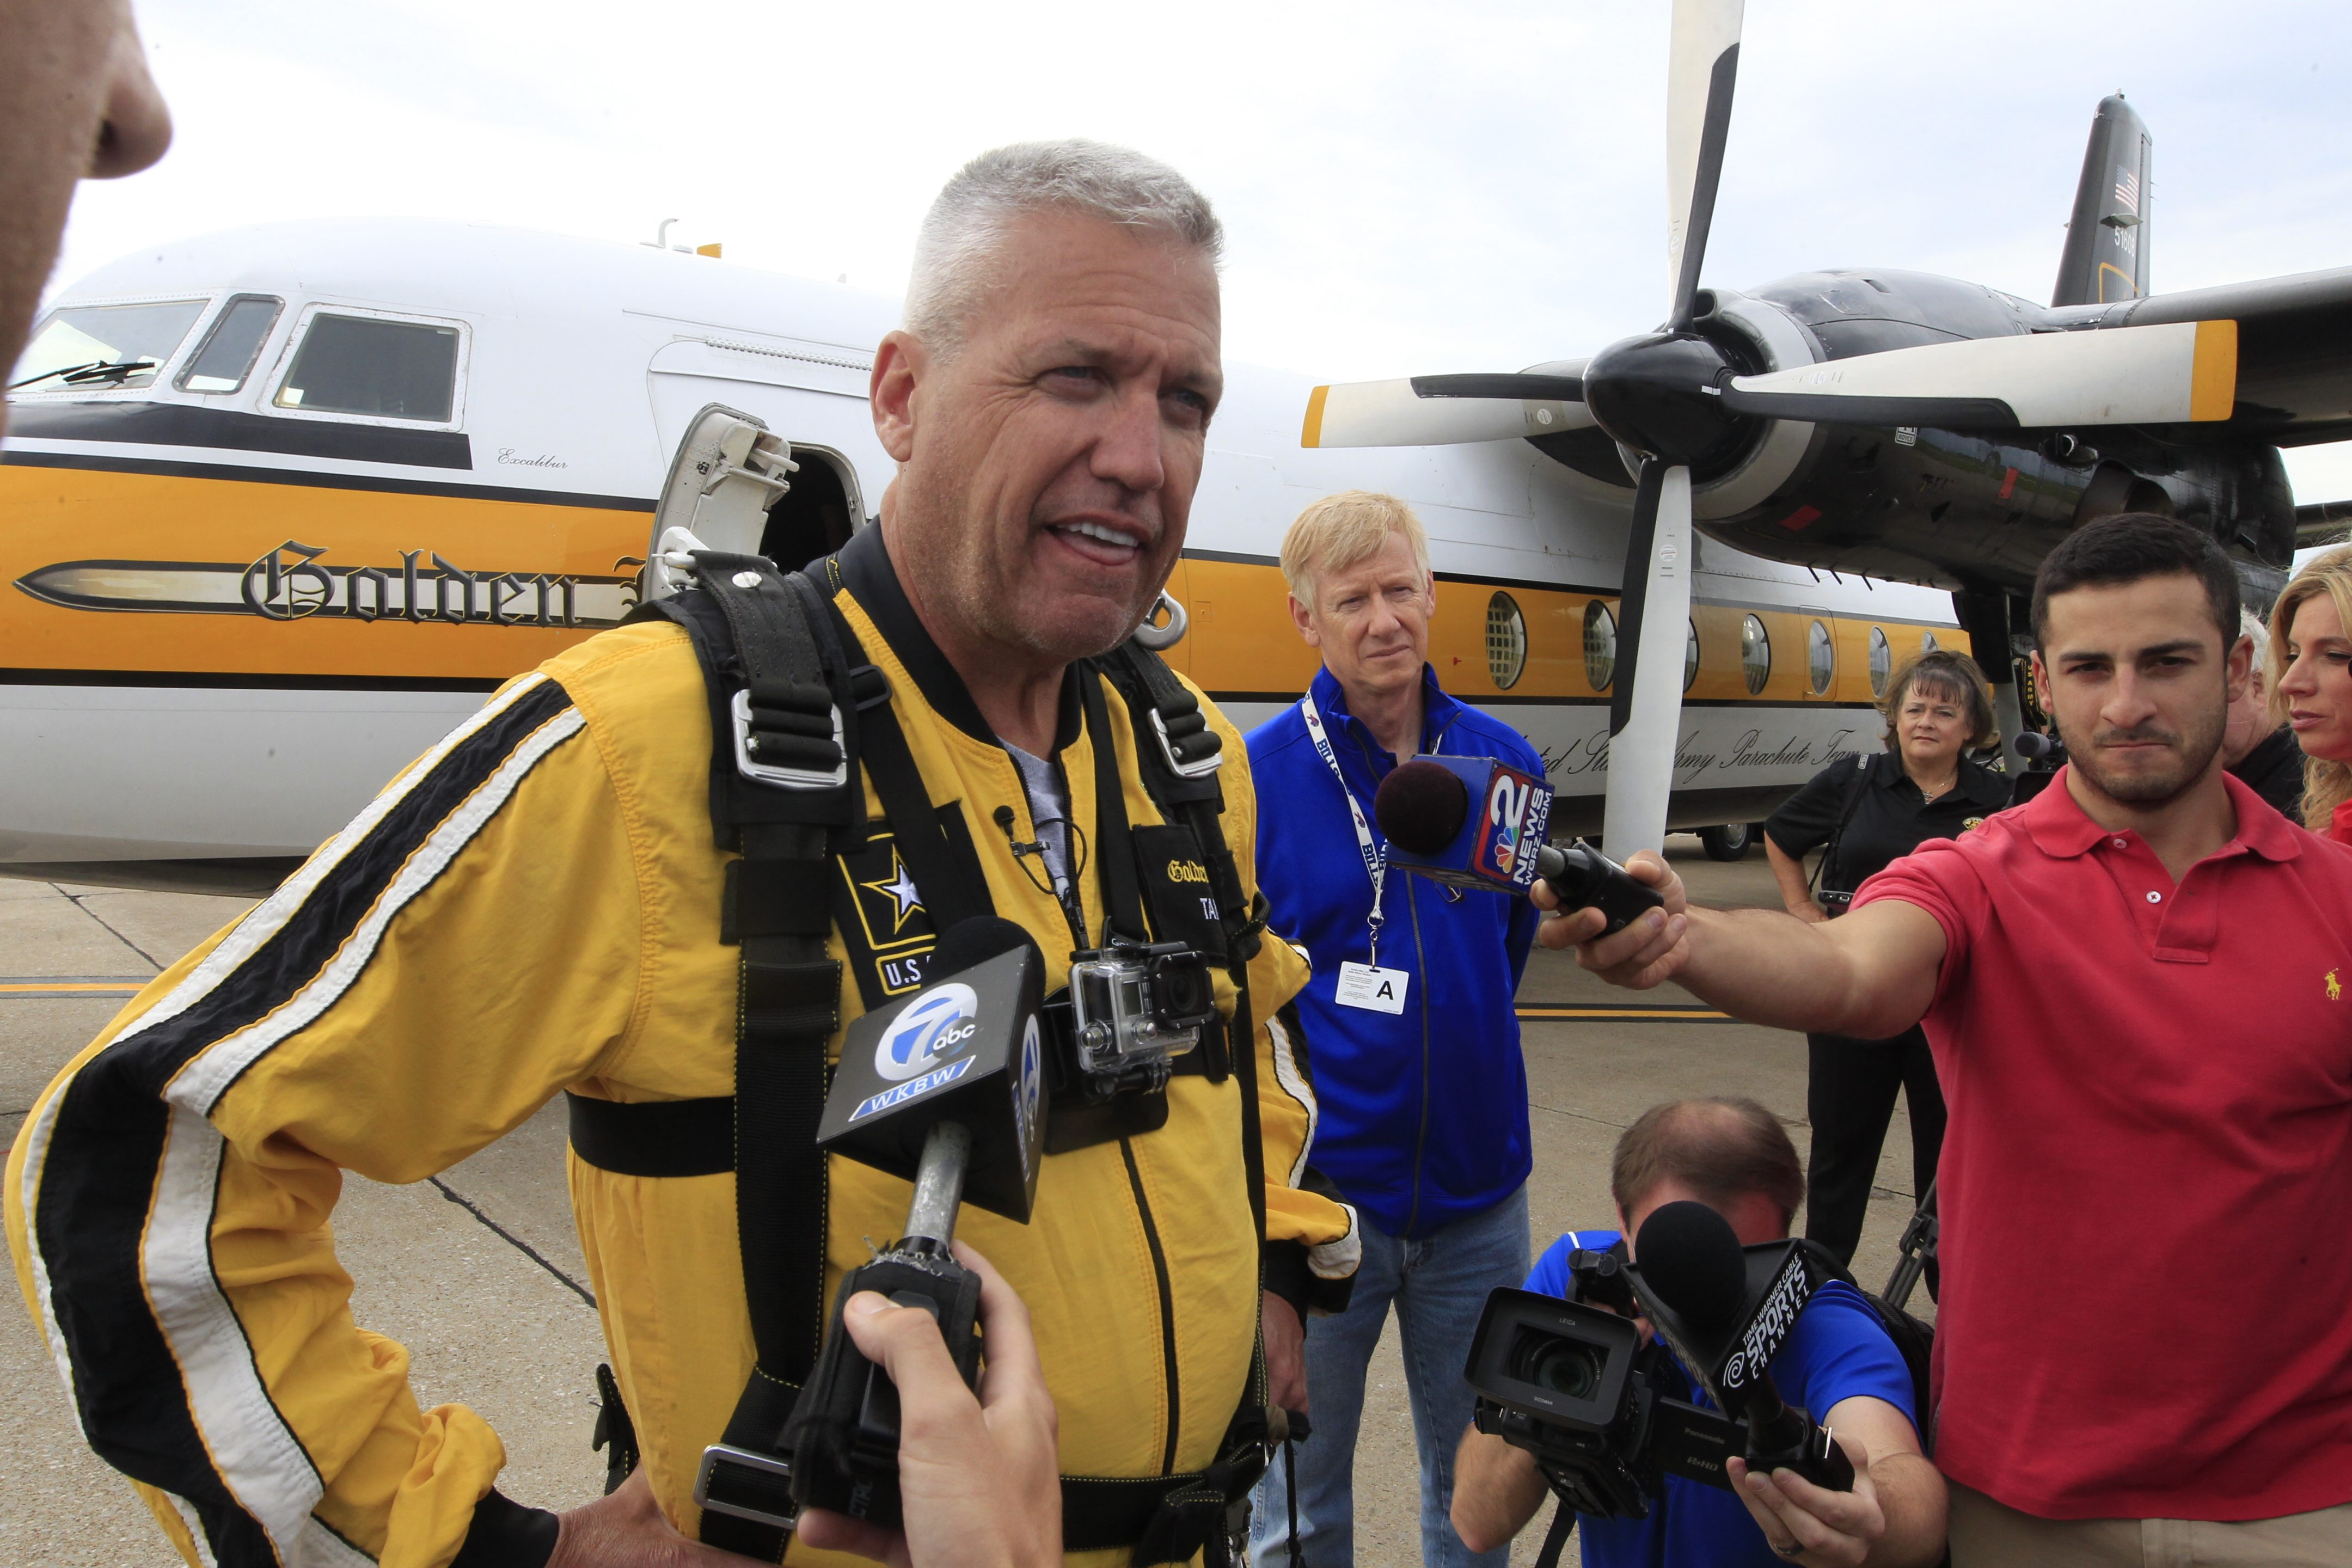 Bills coach Rex Ryan talks to the media before he participated in a tandem jump with the U.S. Army Golden Knights  at the Niagara Falls Air Base on July 17.  (John Hickey/Buffalo News)